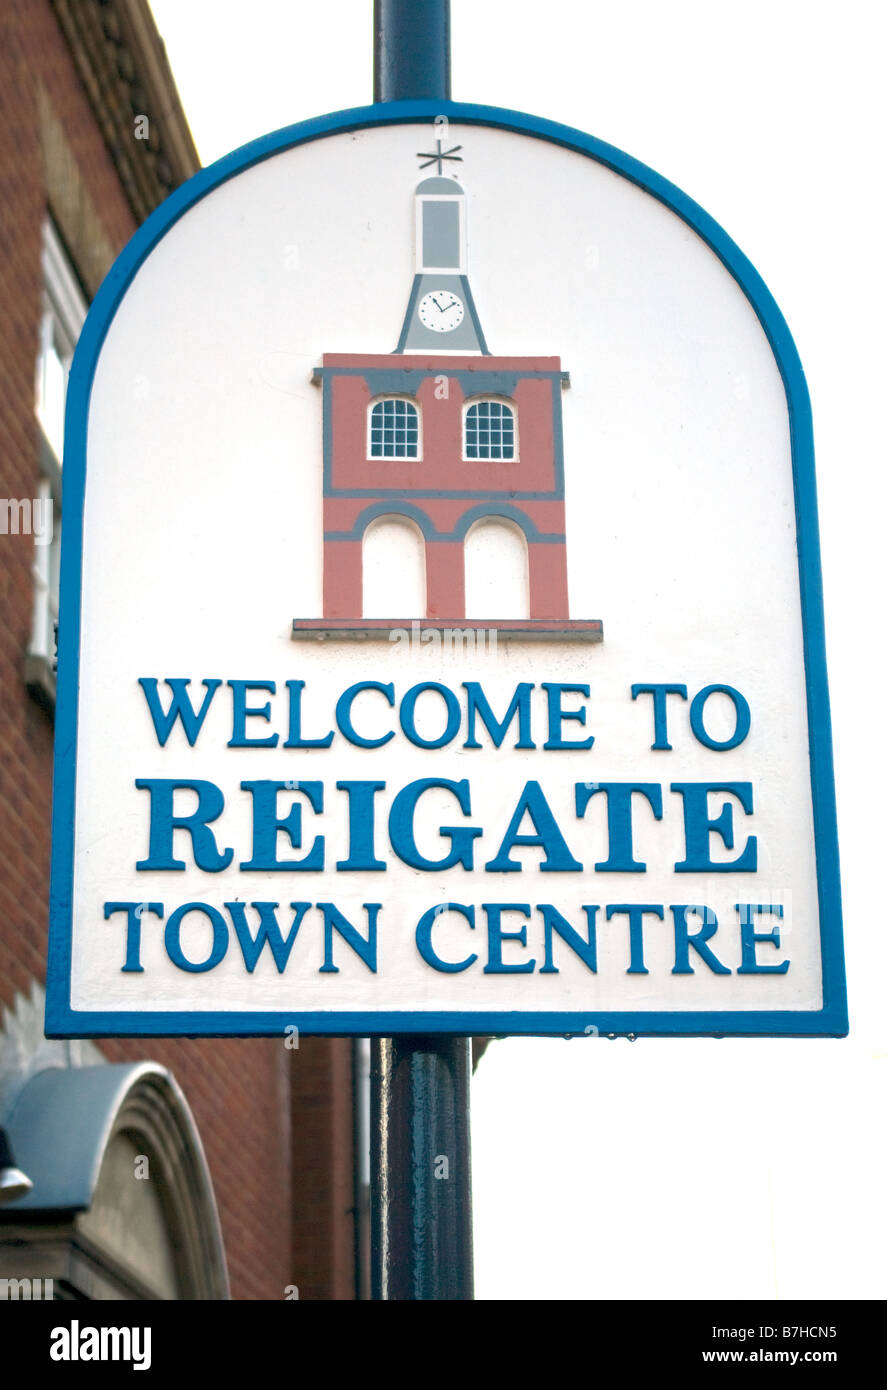 Welcome signs stock photos welcome signs stock images alamy welcome to reigate town centre sign signs surrey stock image kristyandbryce Images